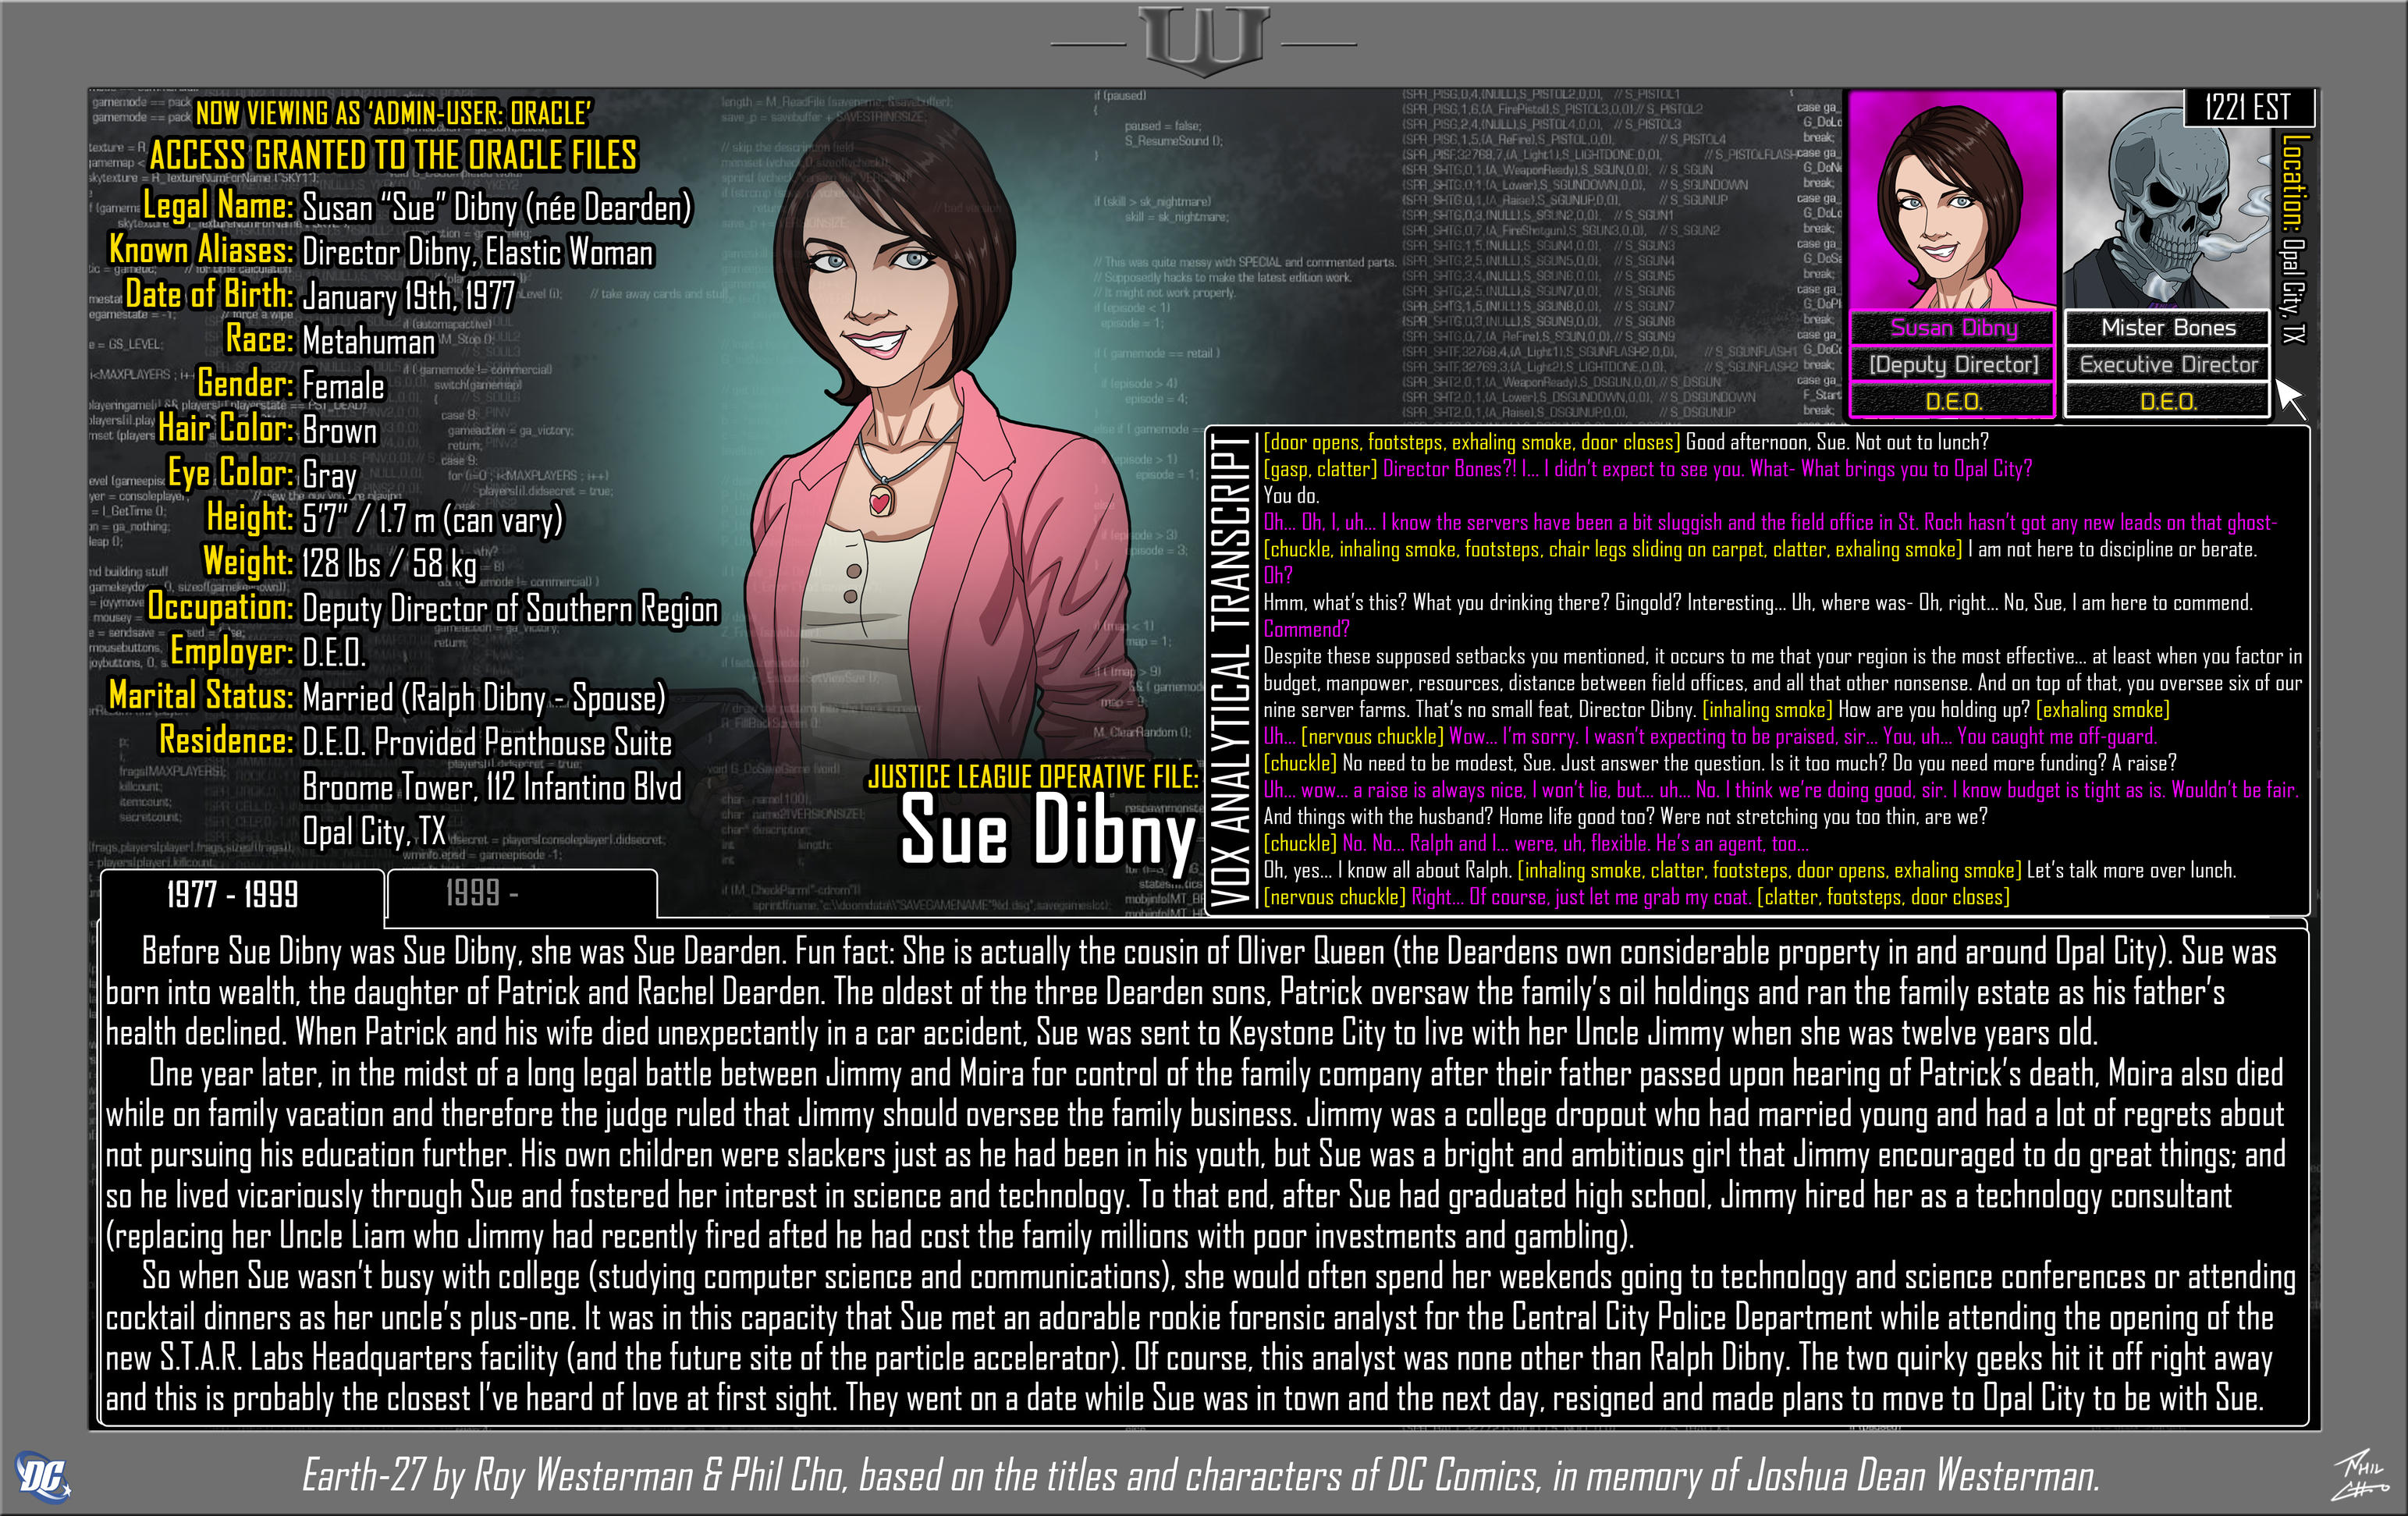 [Earth-27: Oracle Files] Sue Dibny (1/2) by Roysovitch